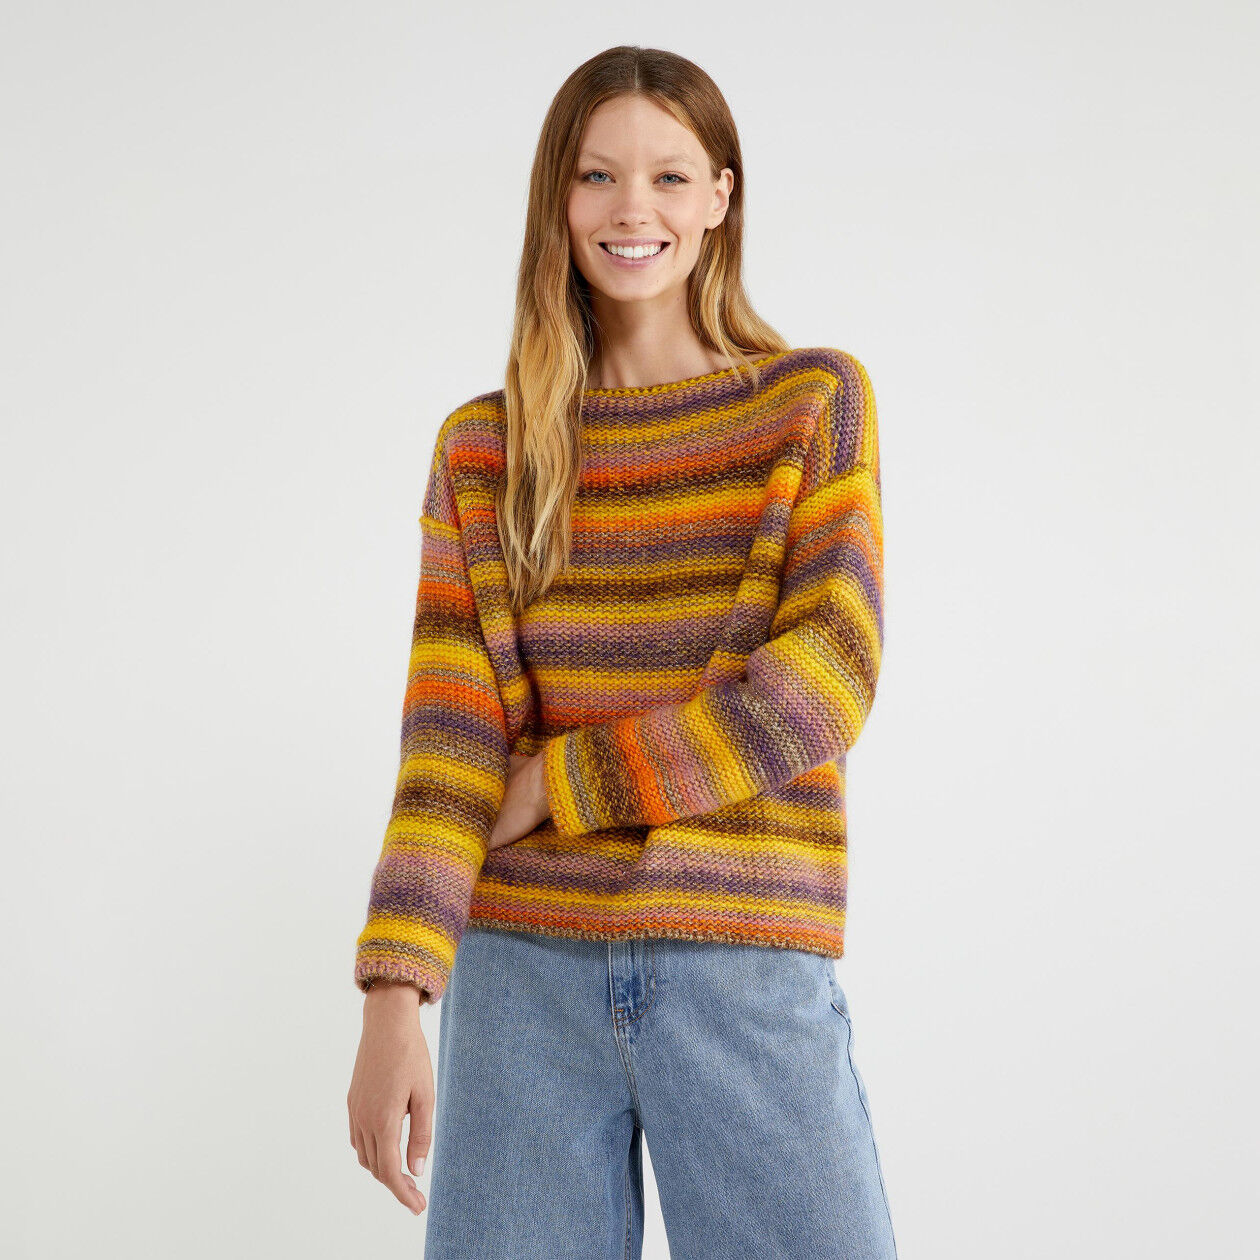 Multicolor sweater